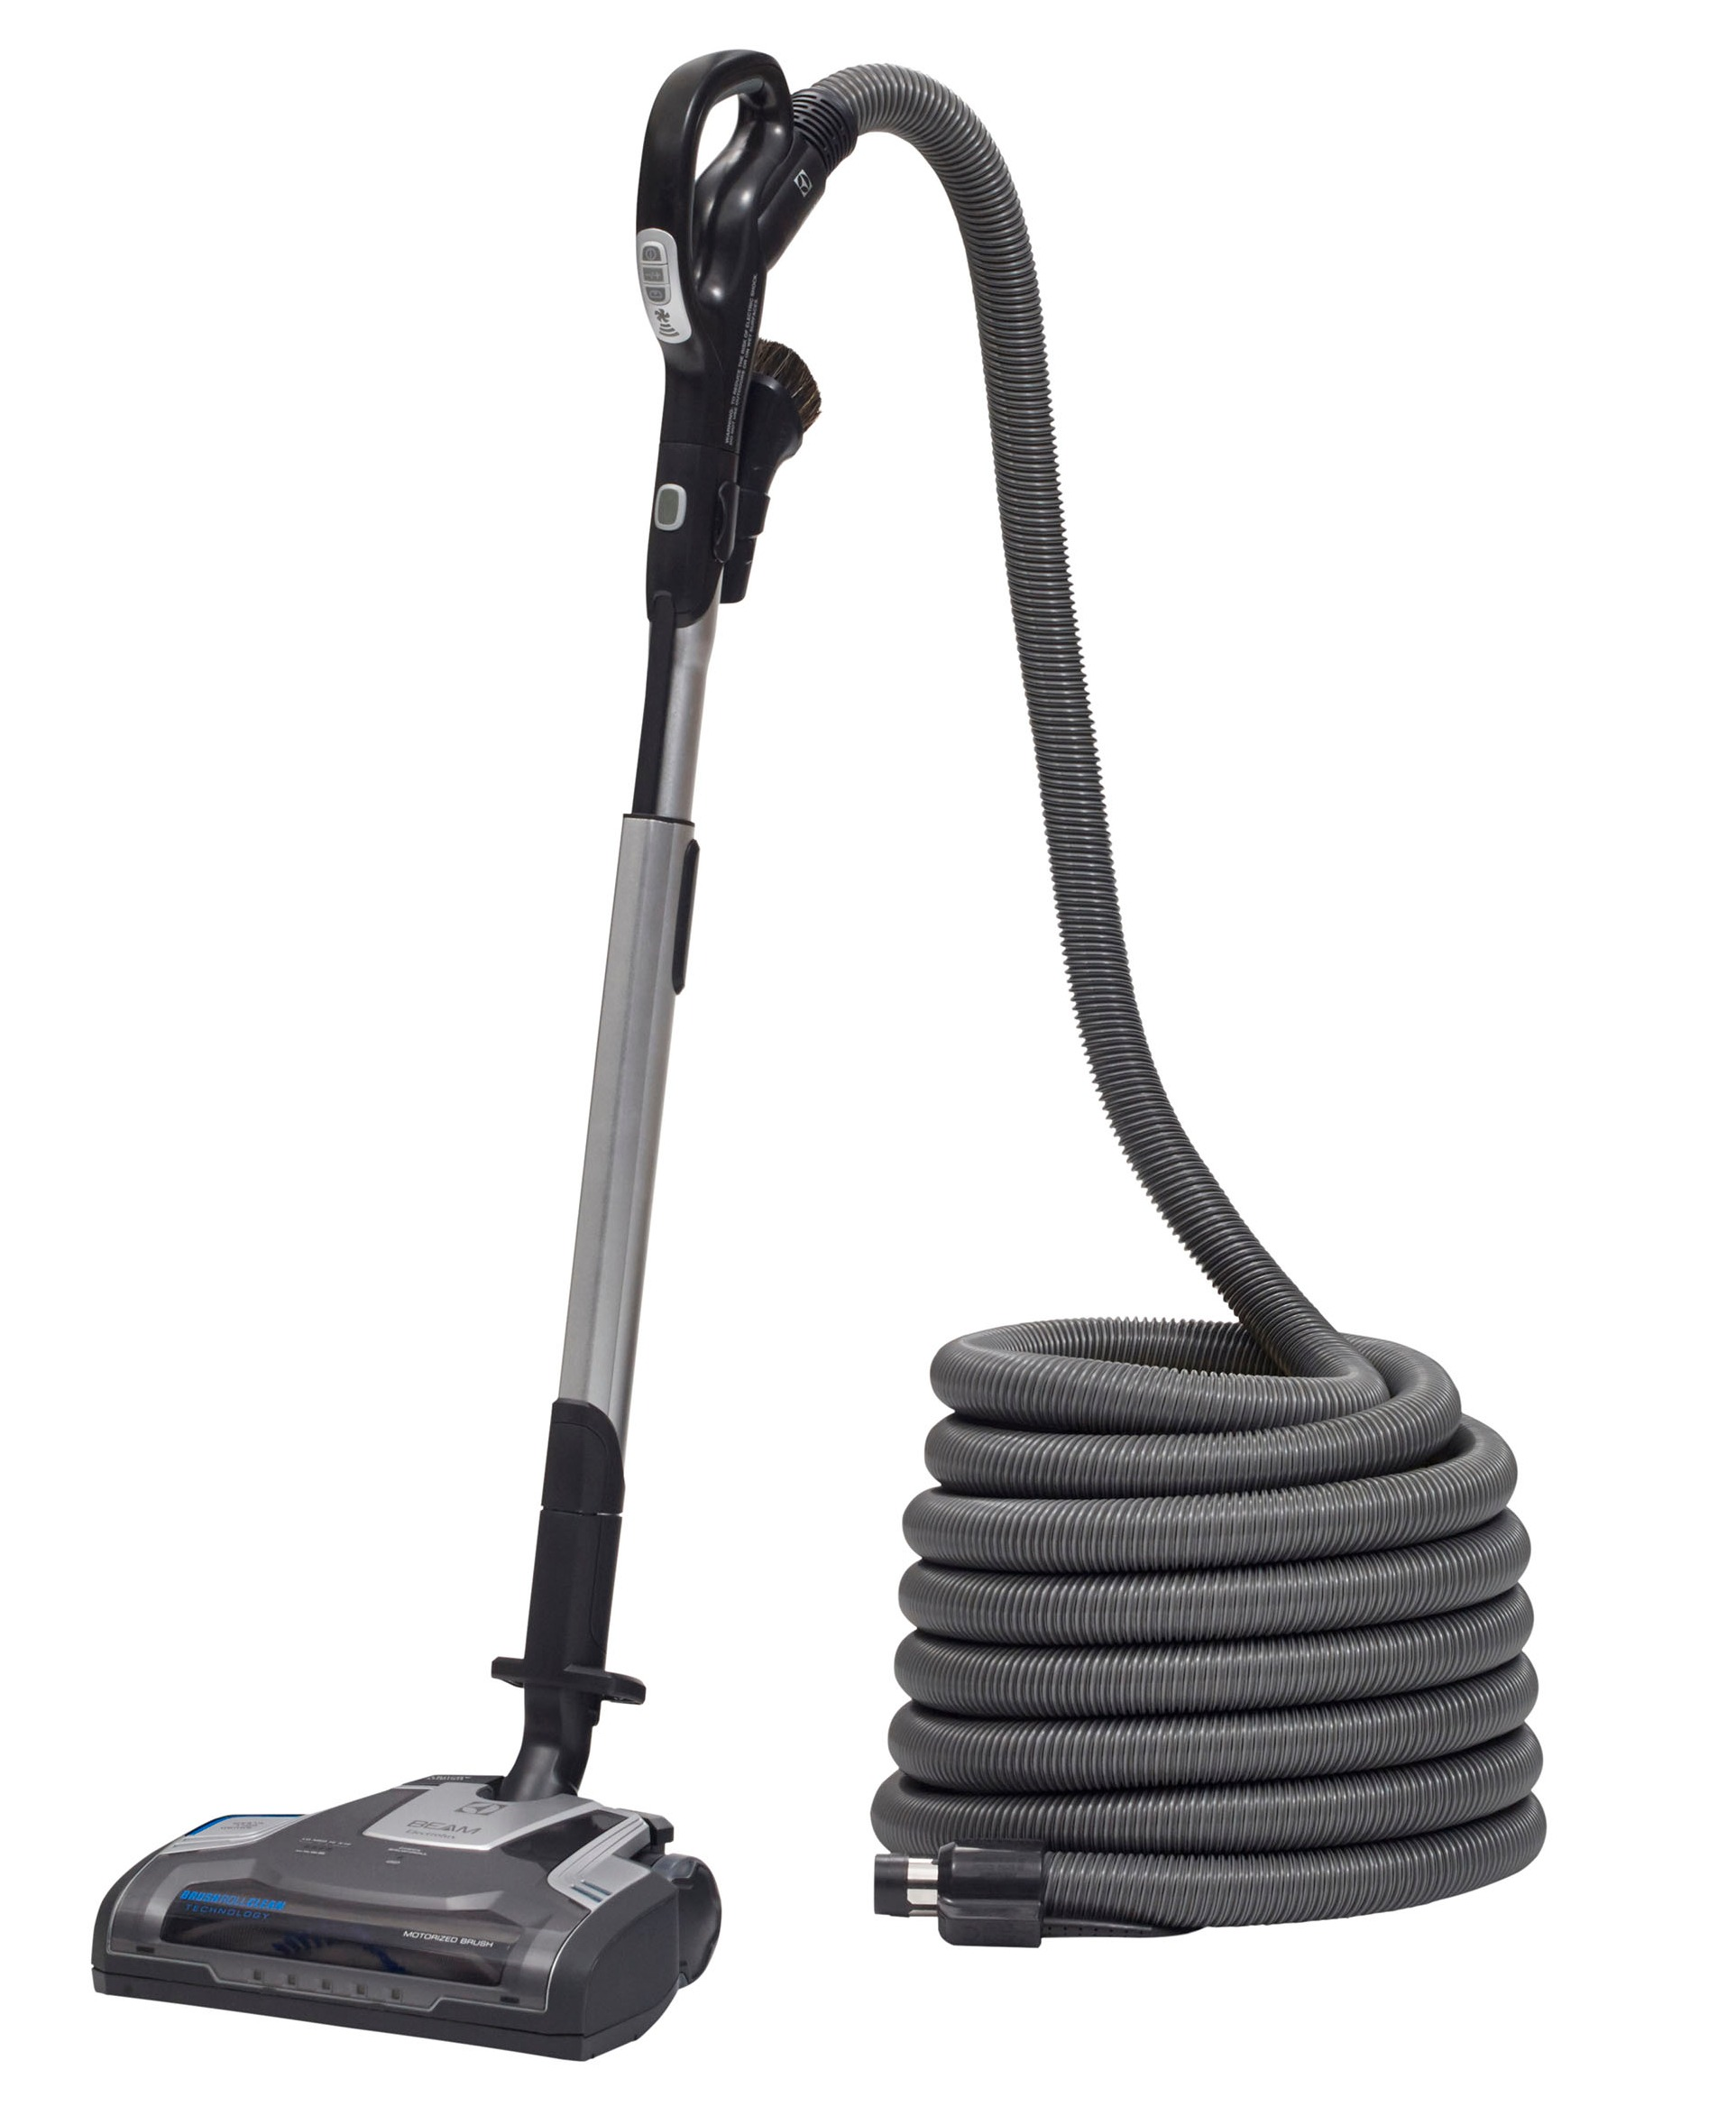 https://www.speedyvacuum.ca/public/uploads/products_photo/58190c7dc7411.jpg